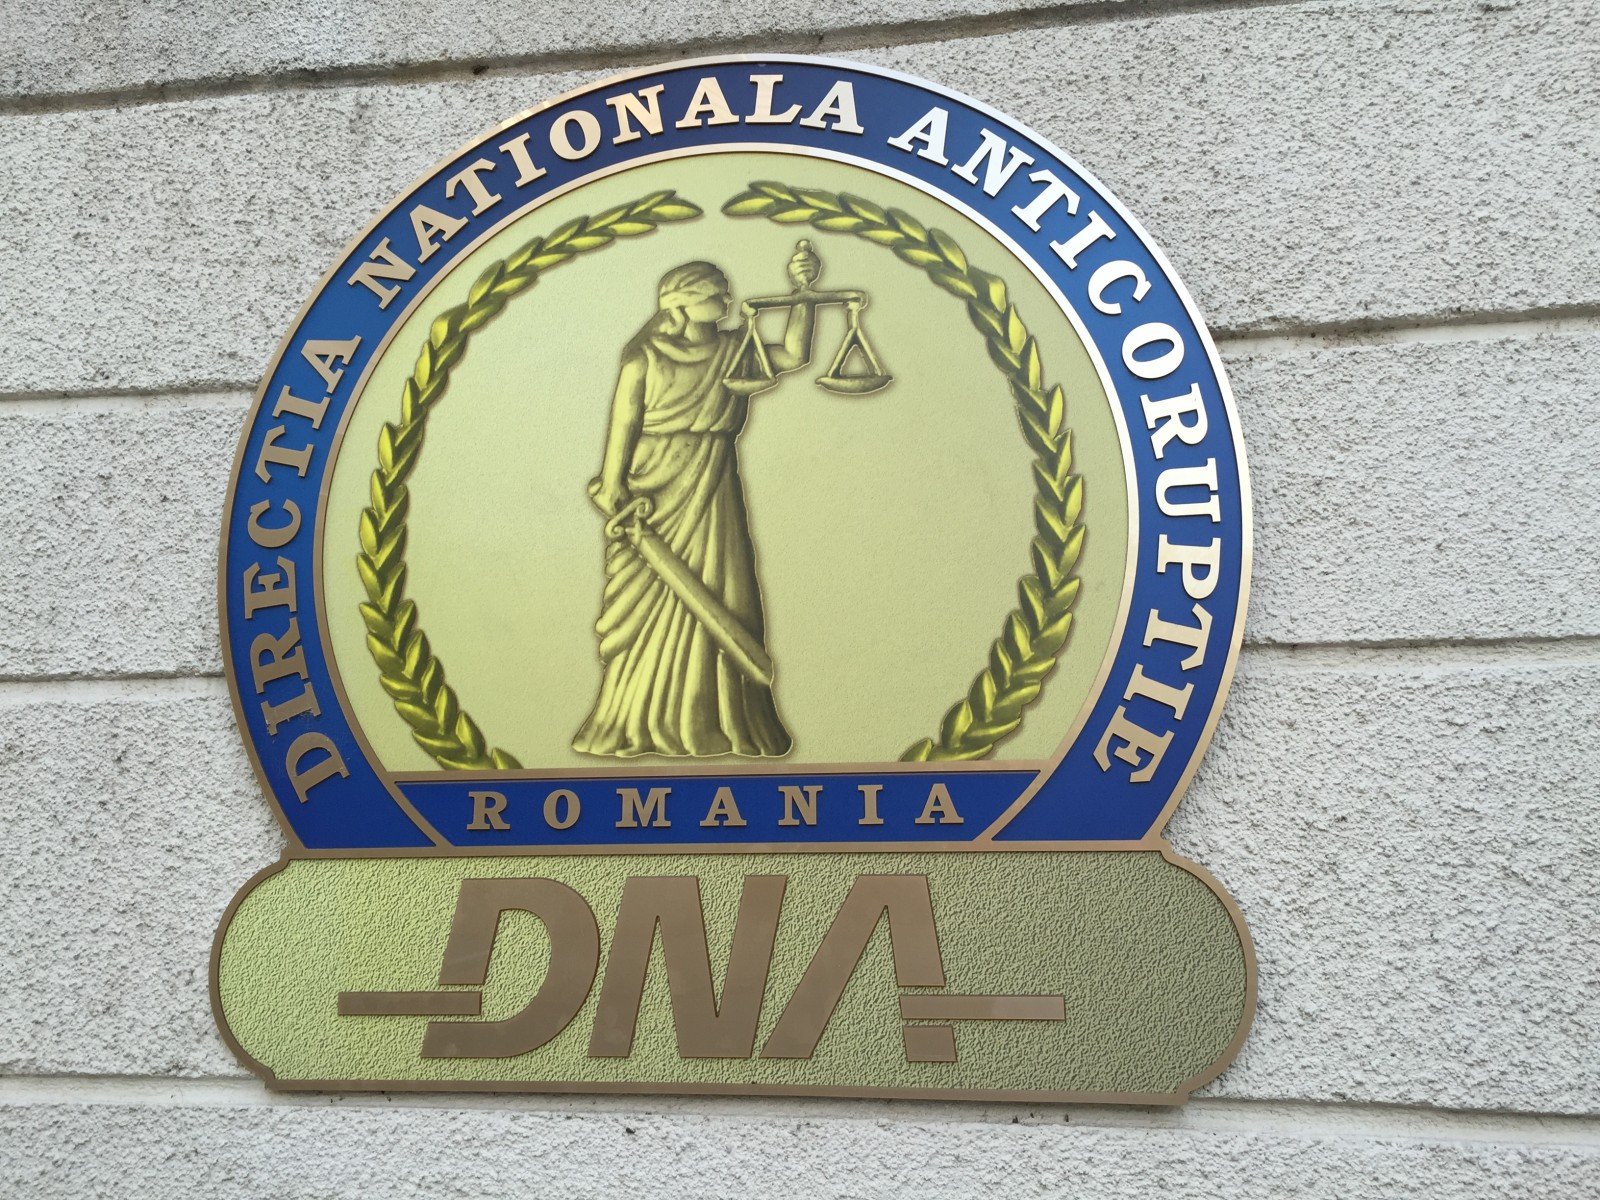 DNA : parquet anti-corruption